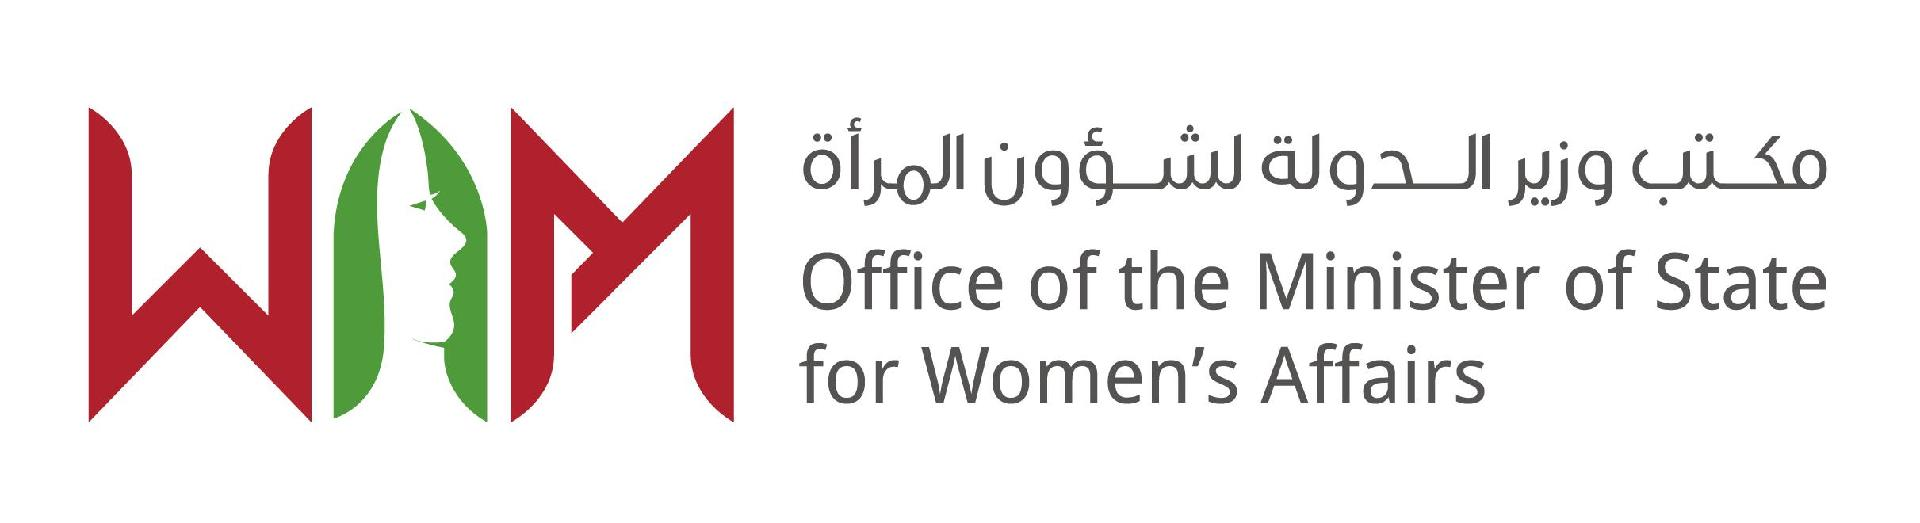 Office of the Minister of State for Women's Affairs (OMSWA)